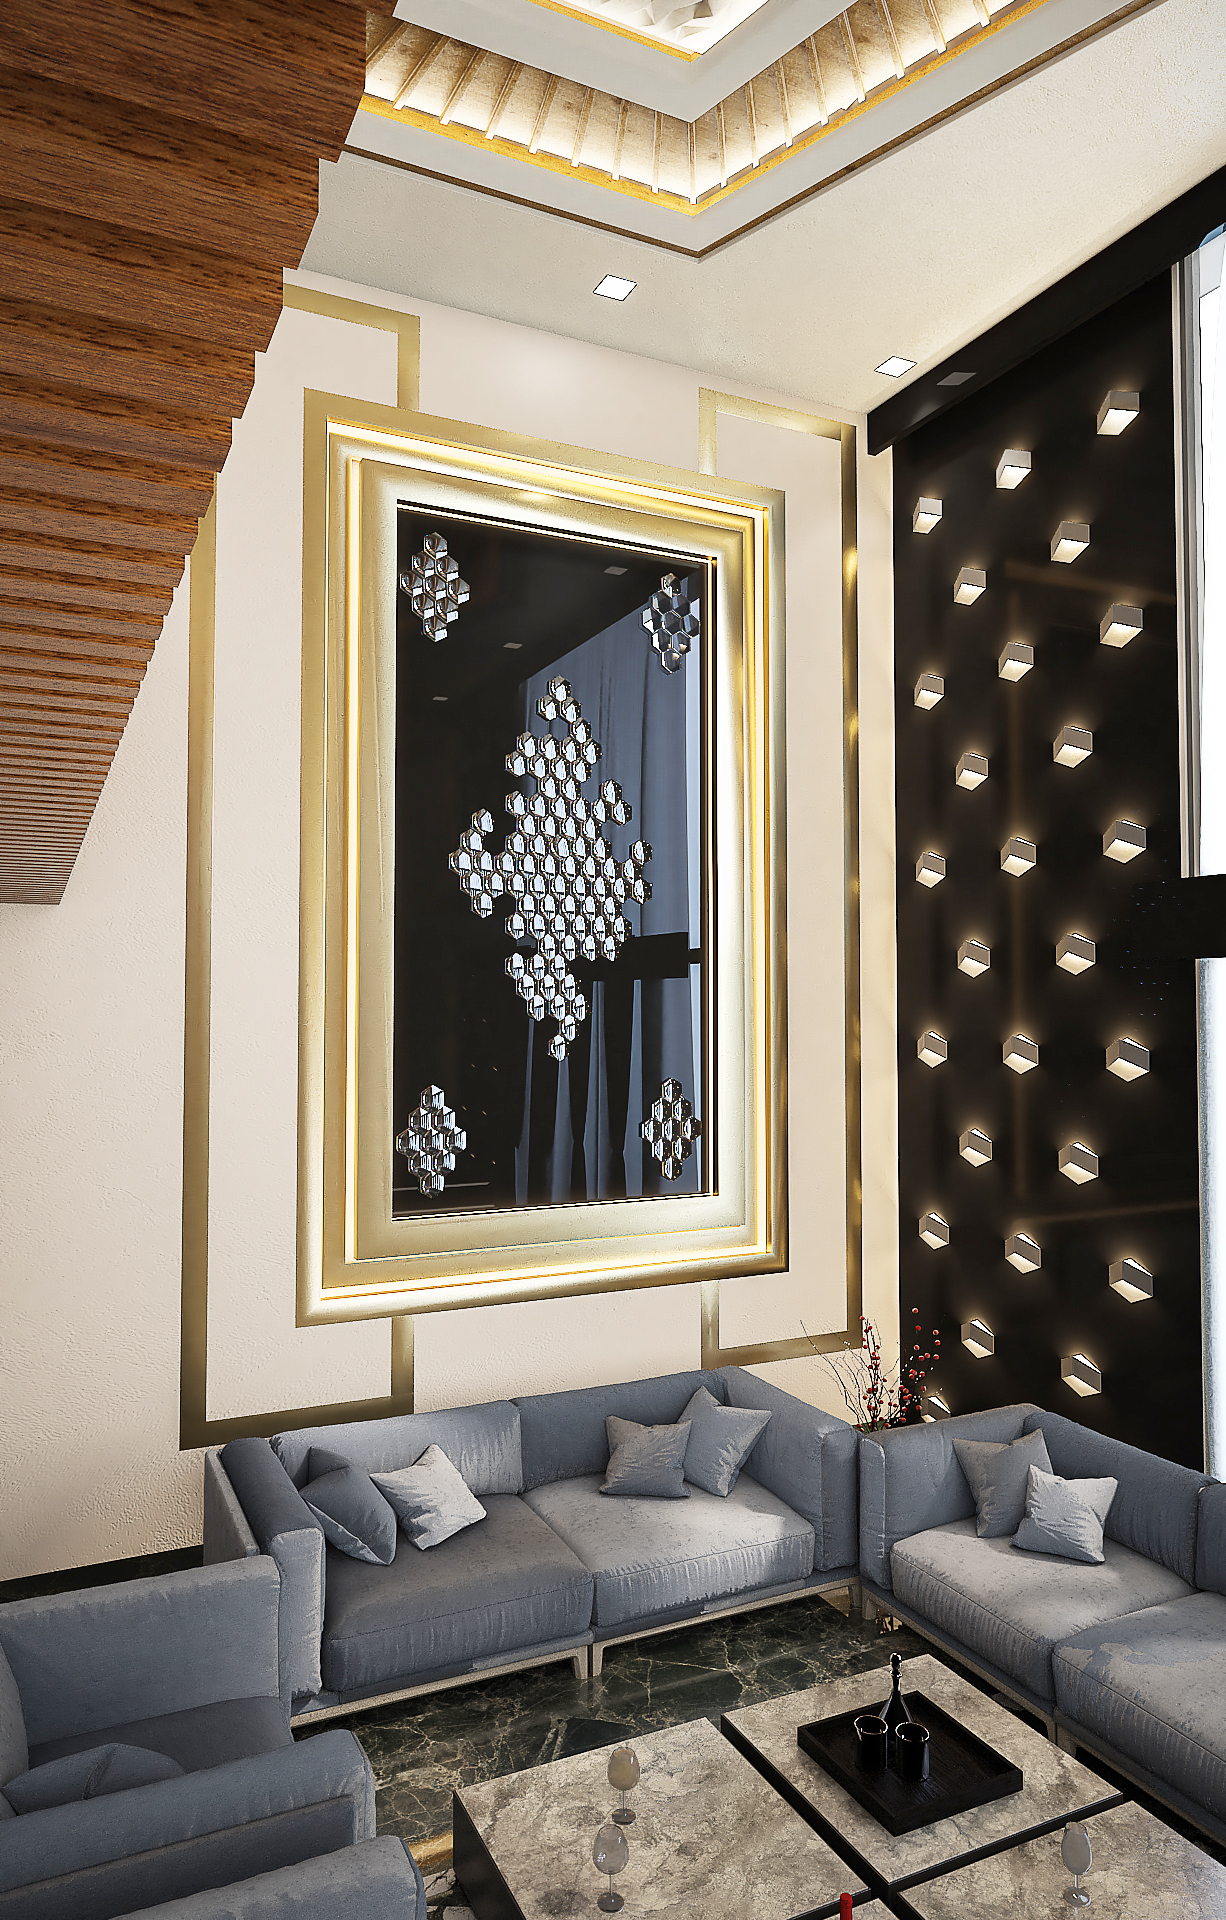 Mr. Raman Bhatia Rohini Delhi Residential Interior Design Done By New Arch Studio